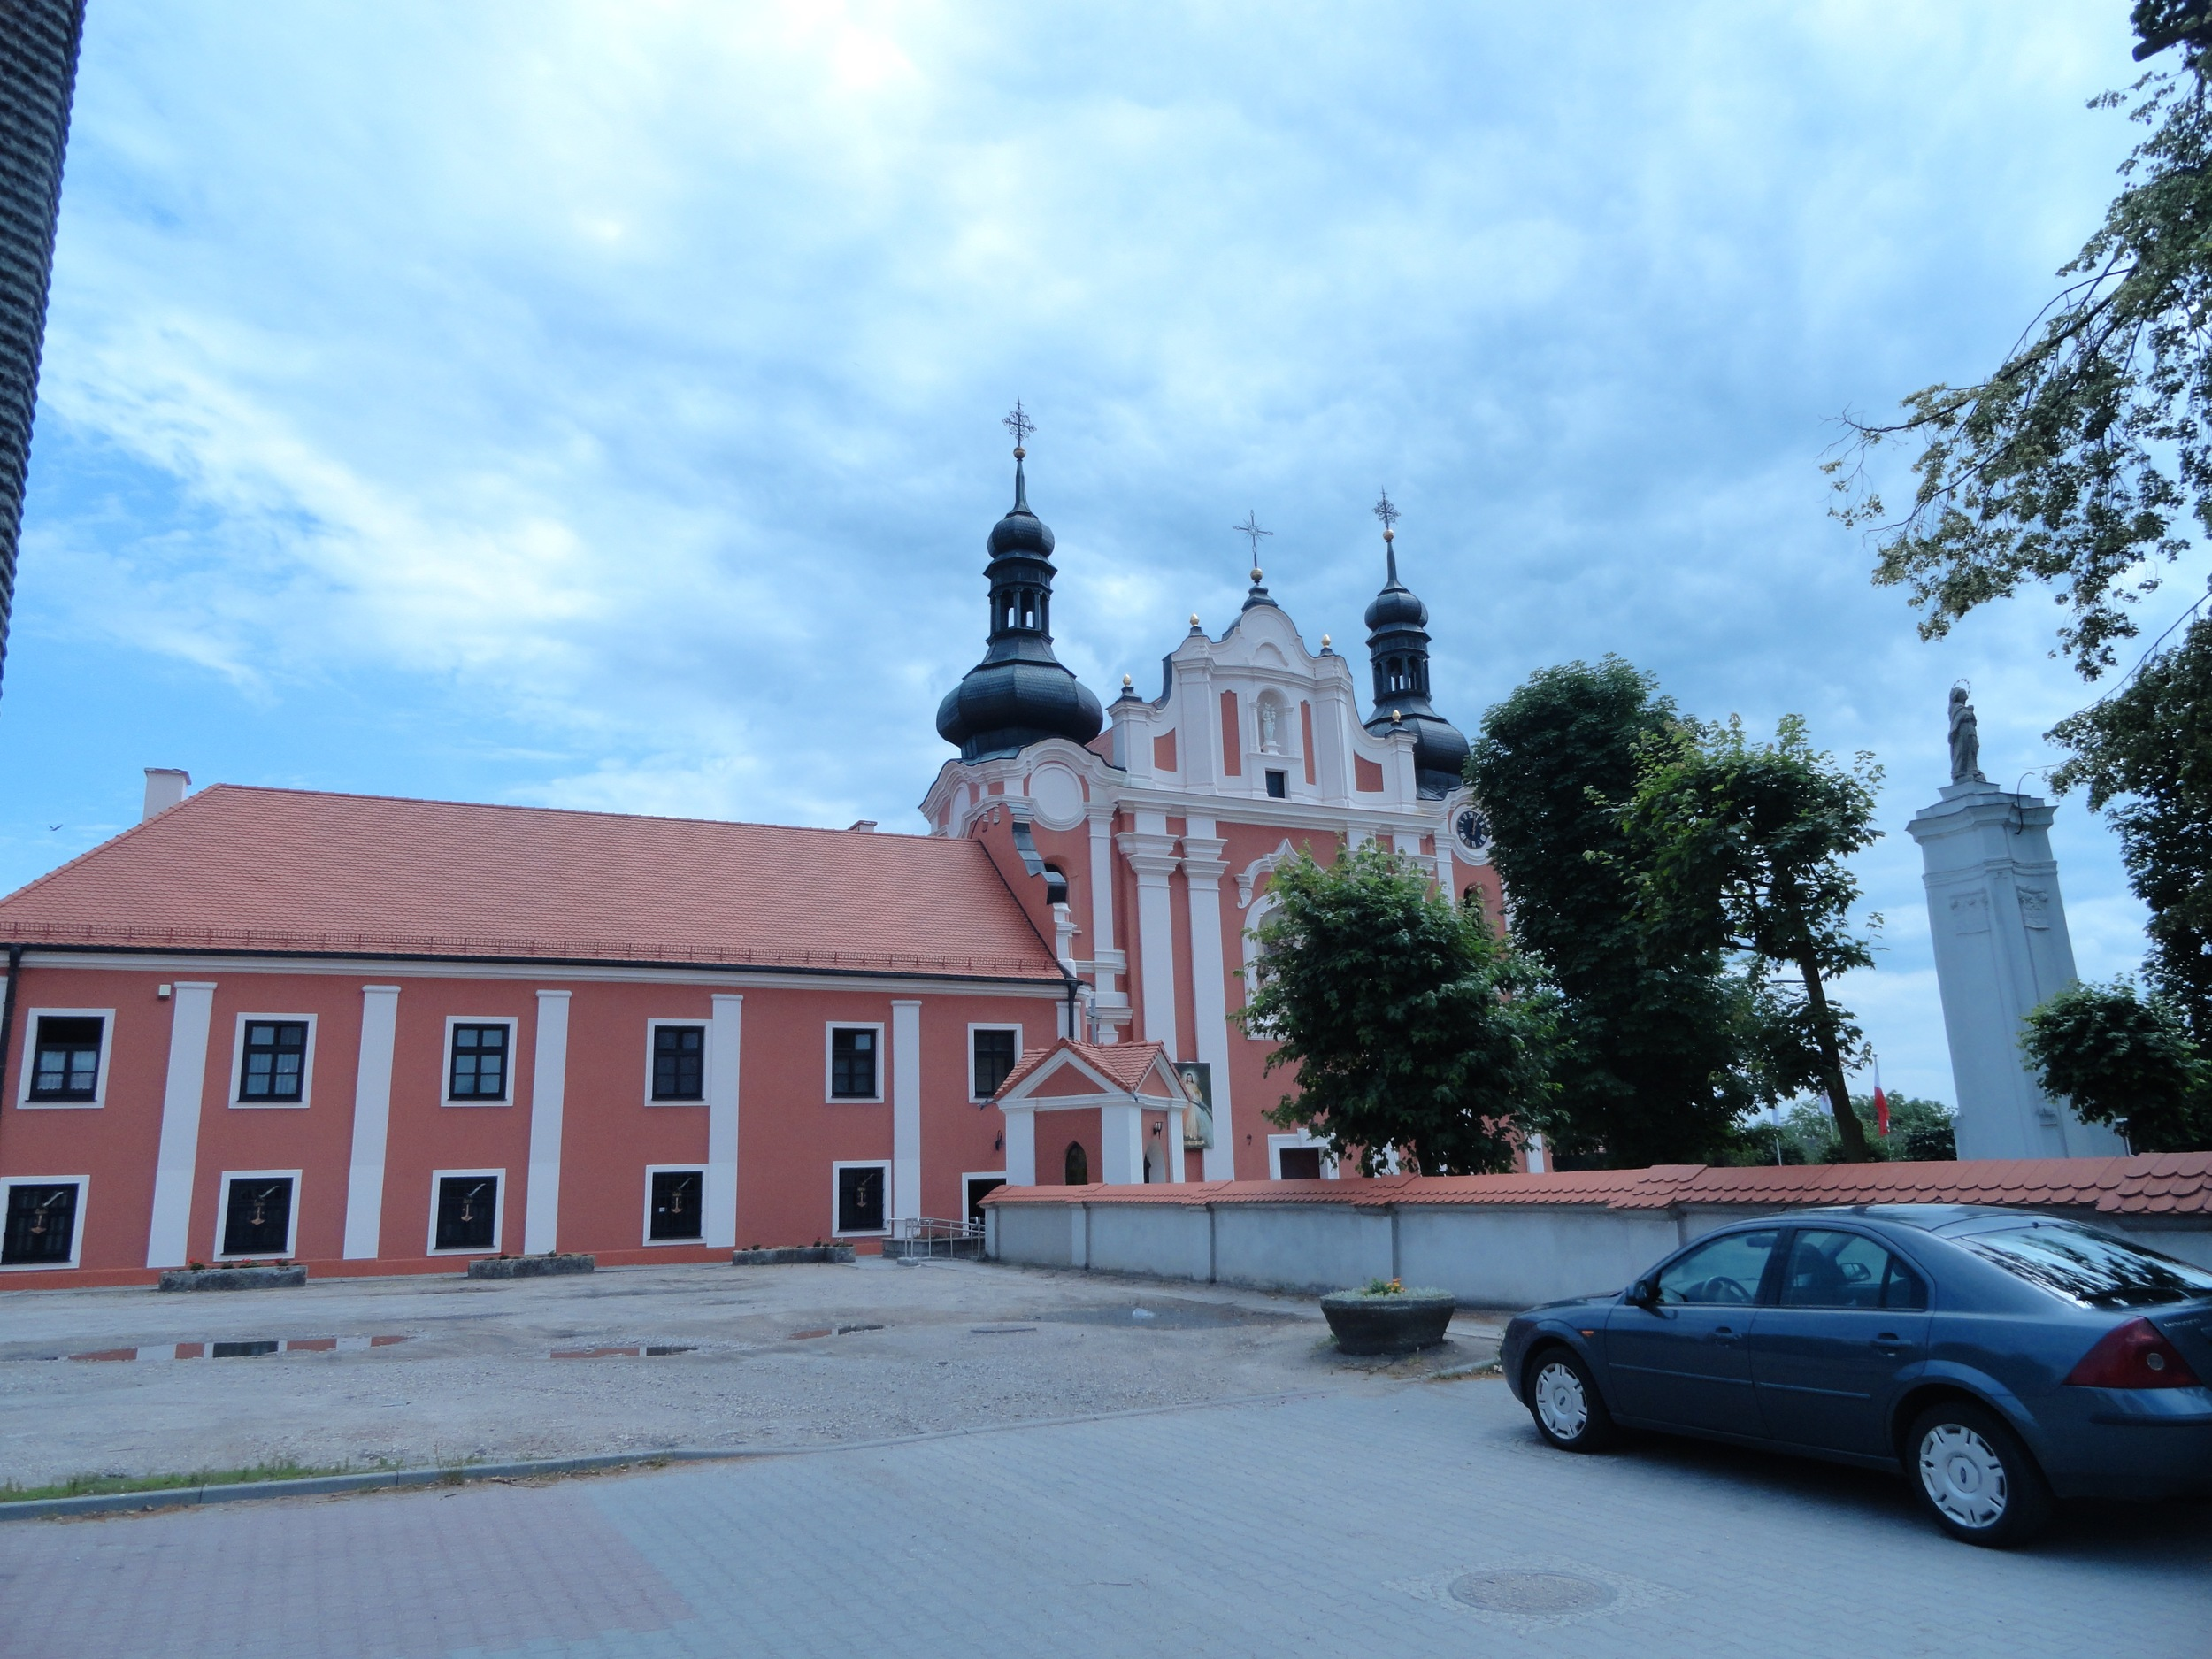 Catholic church in Kłodawa, two blocks from town square. Quite impressive for a small town.